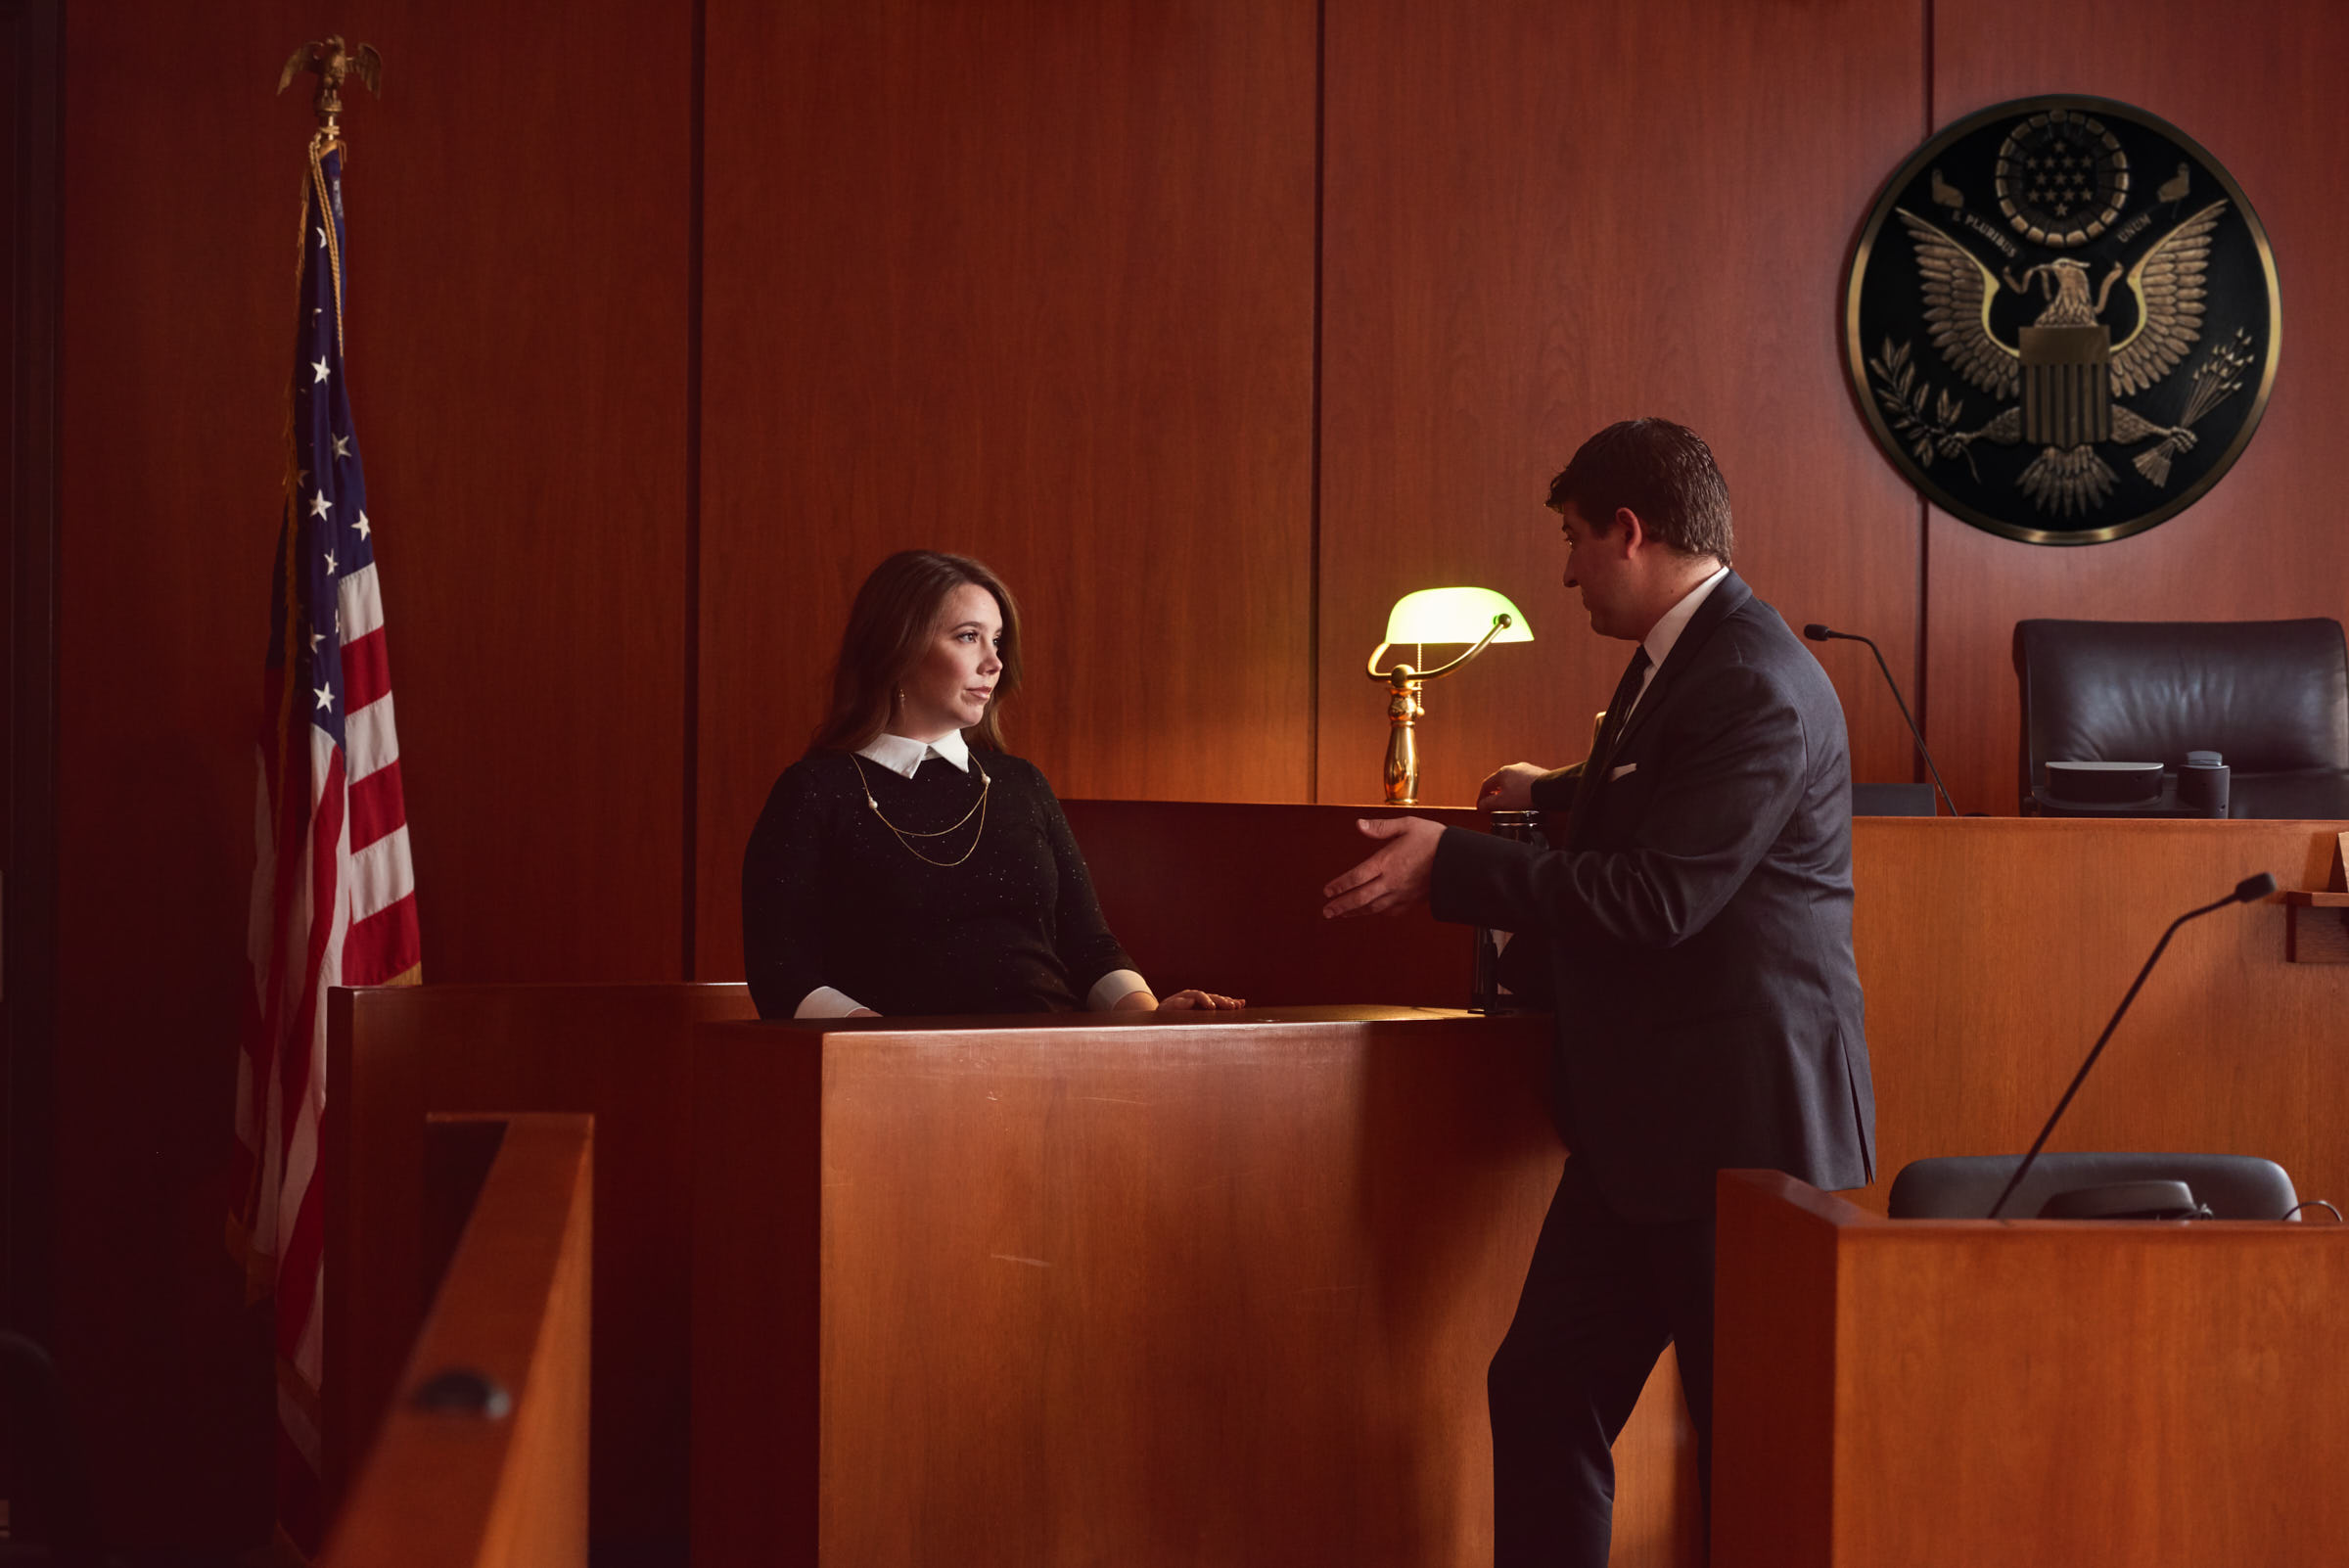 Engagement portrait on the witness stand